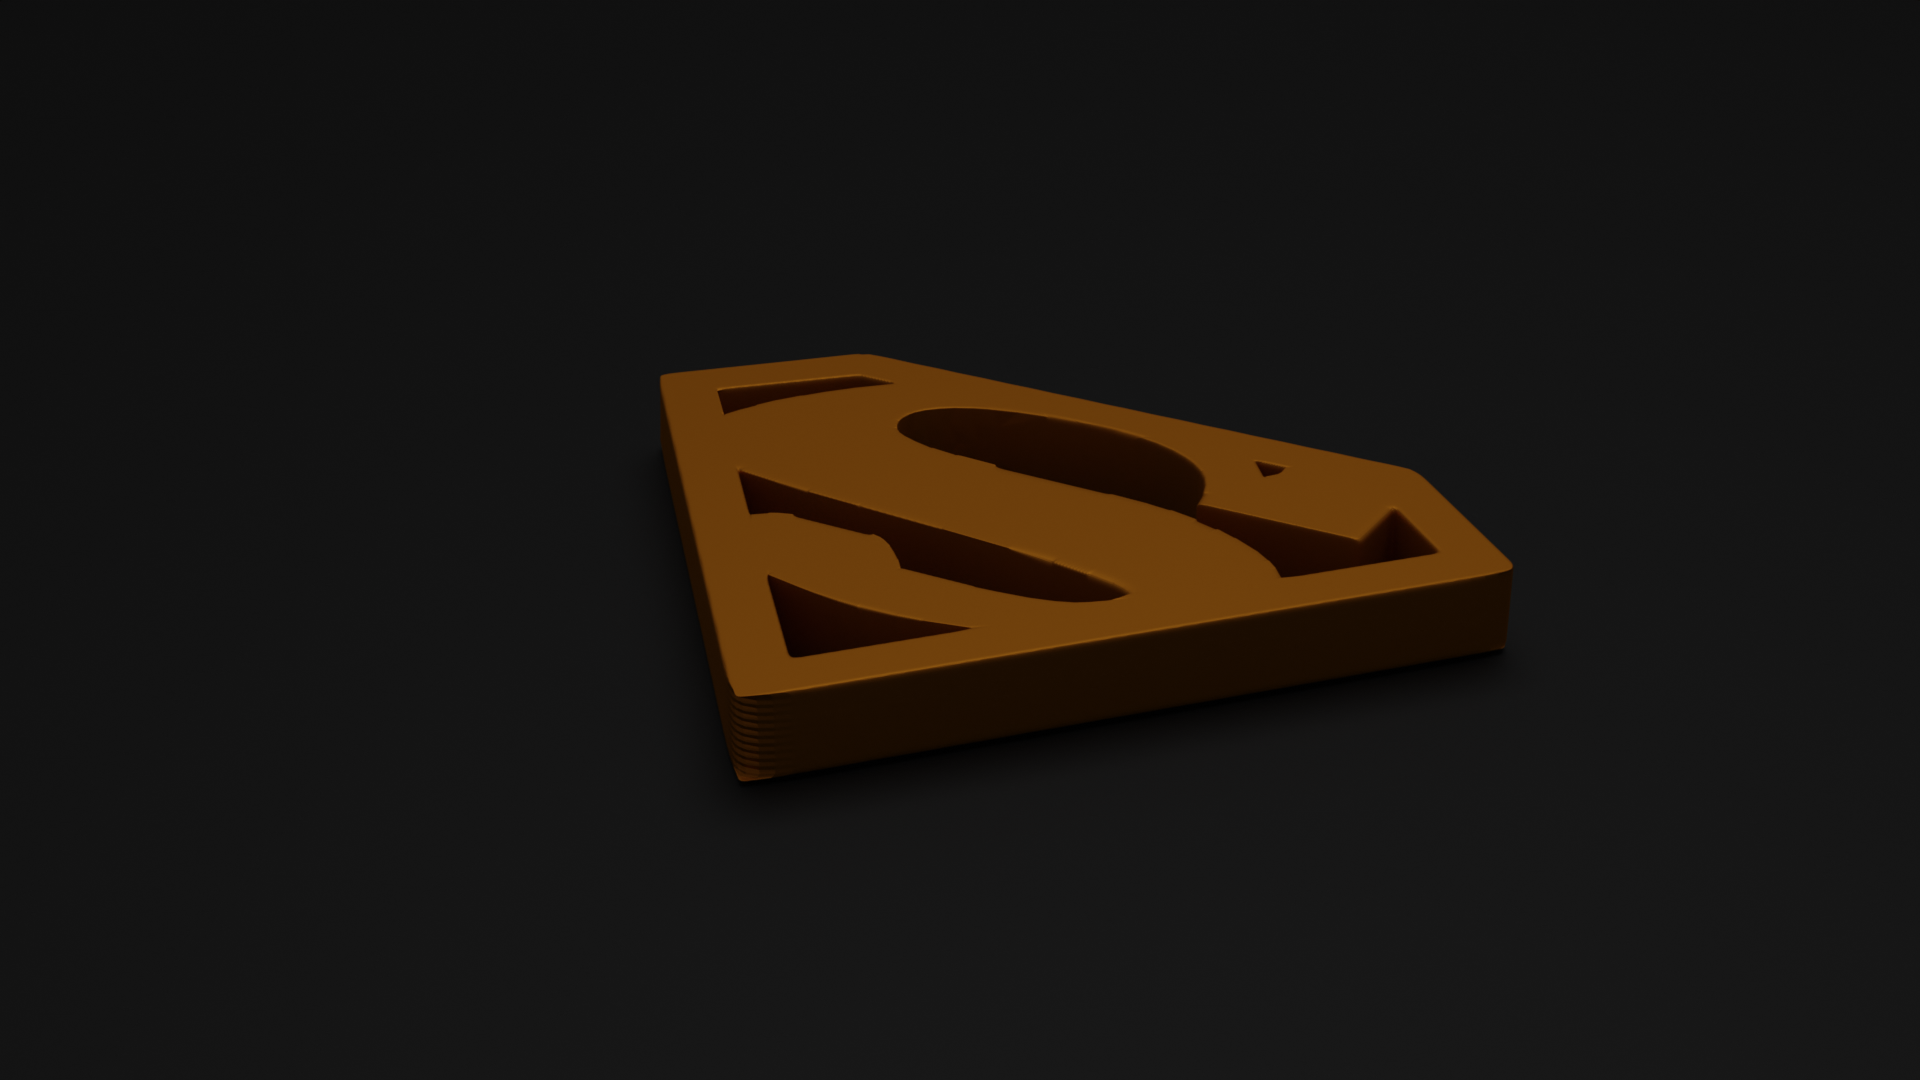 I can create the 2d logo in 3d